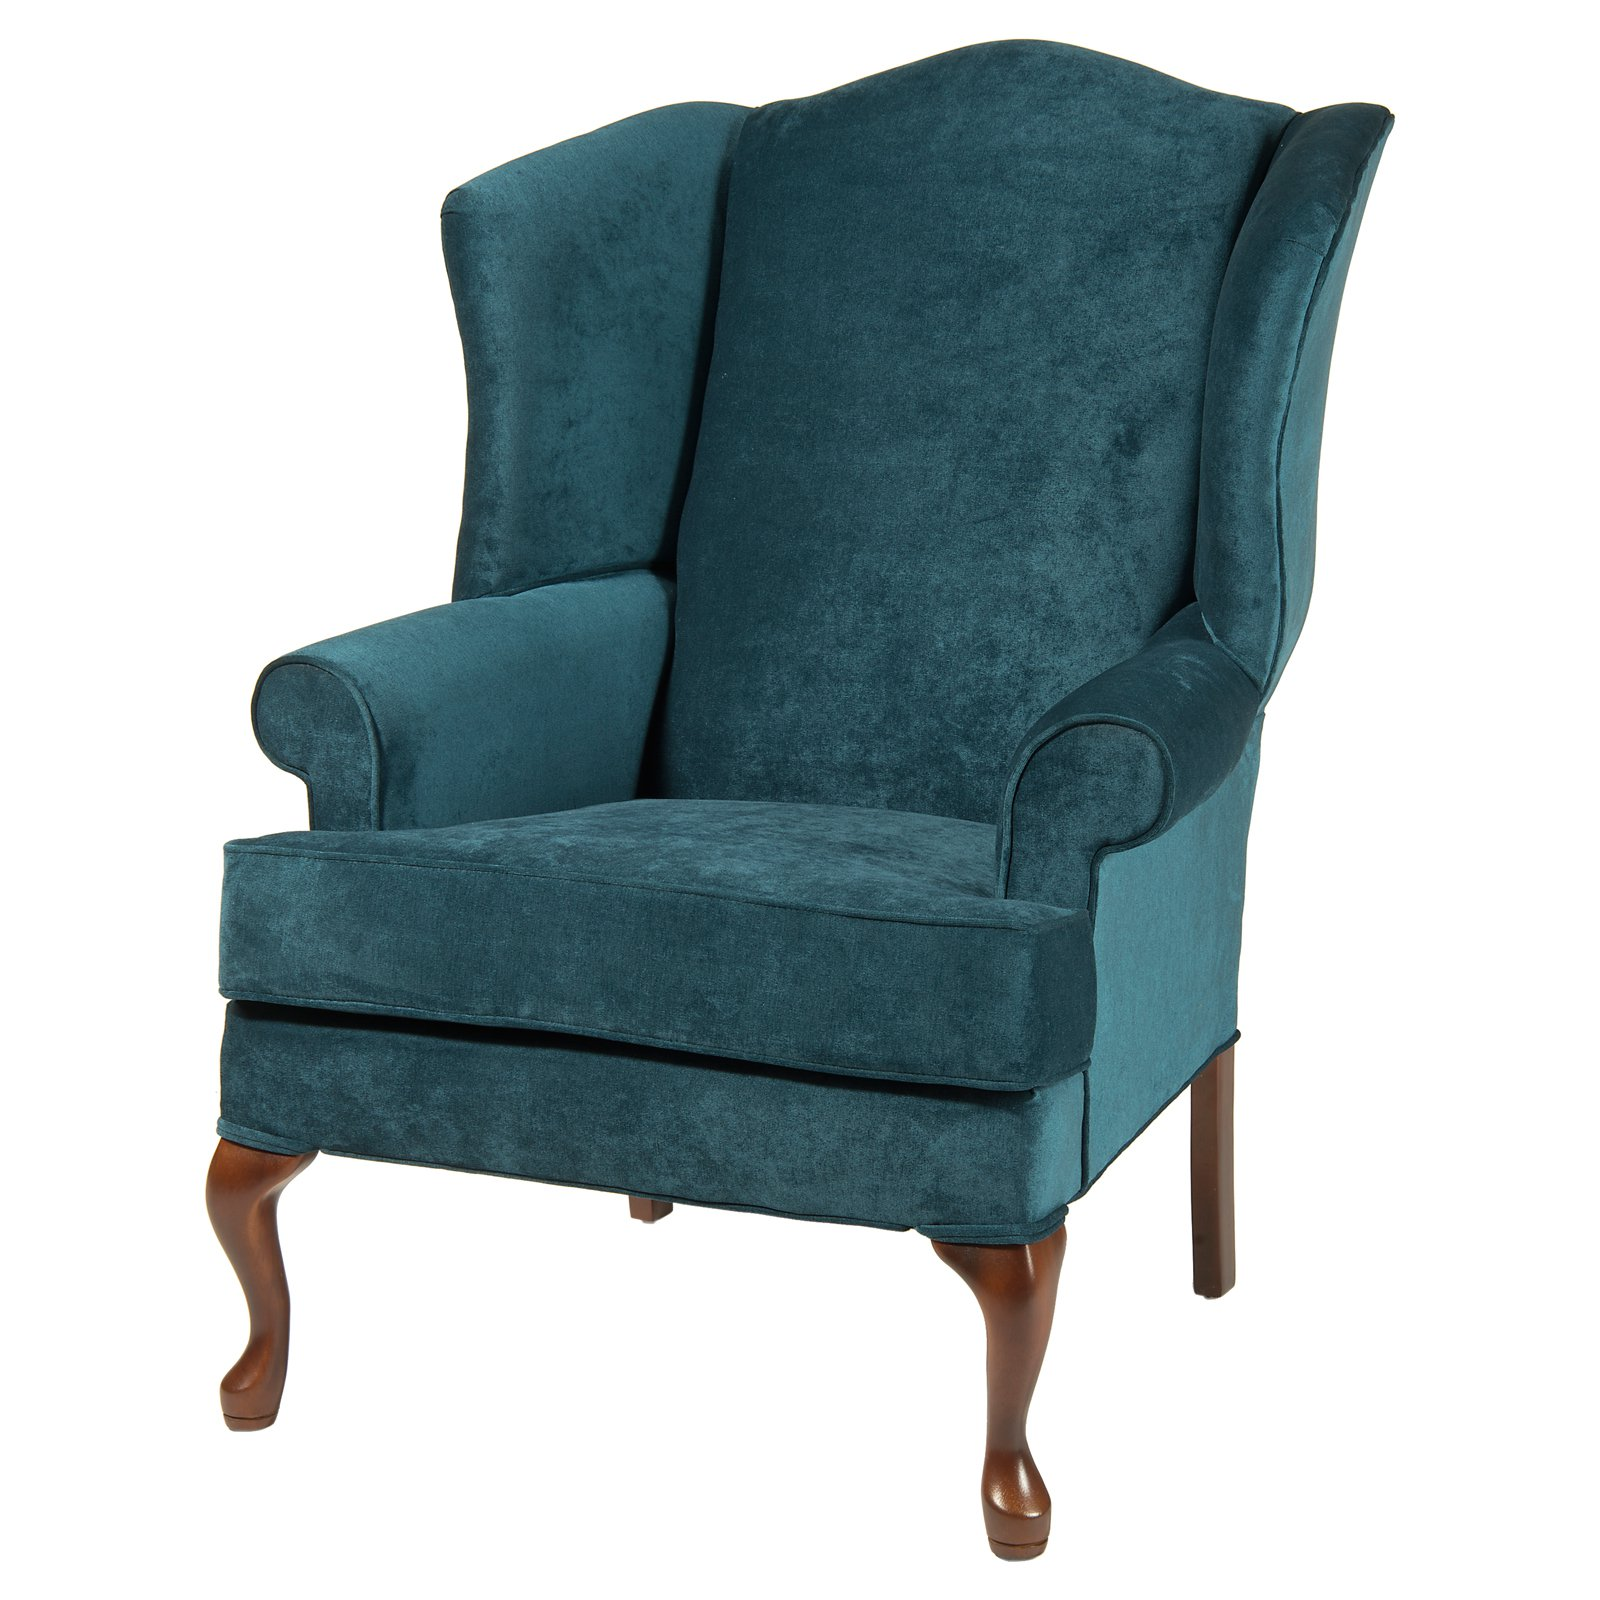 Teal Wingback Chair Comfort Pointe Elizabeth Wingback Chair